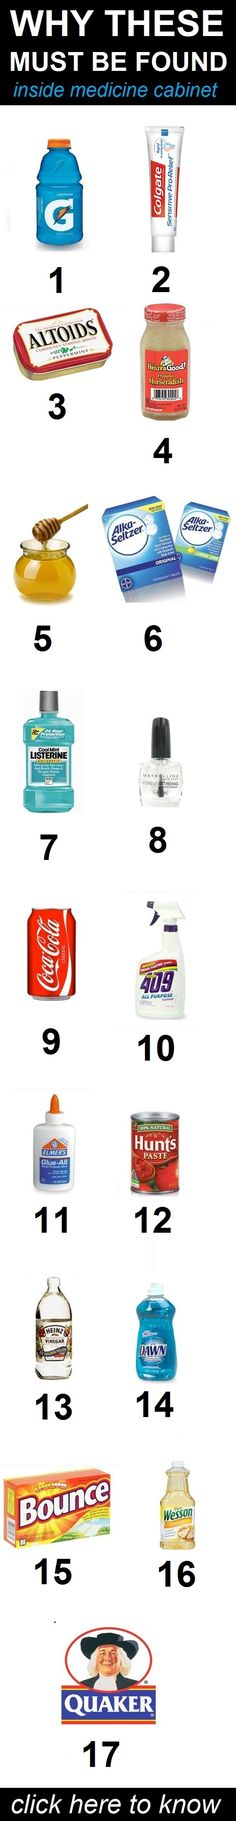 Why These Must Be Found Inside Medicine Cabinet